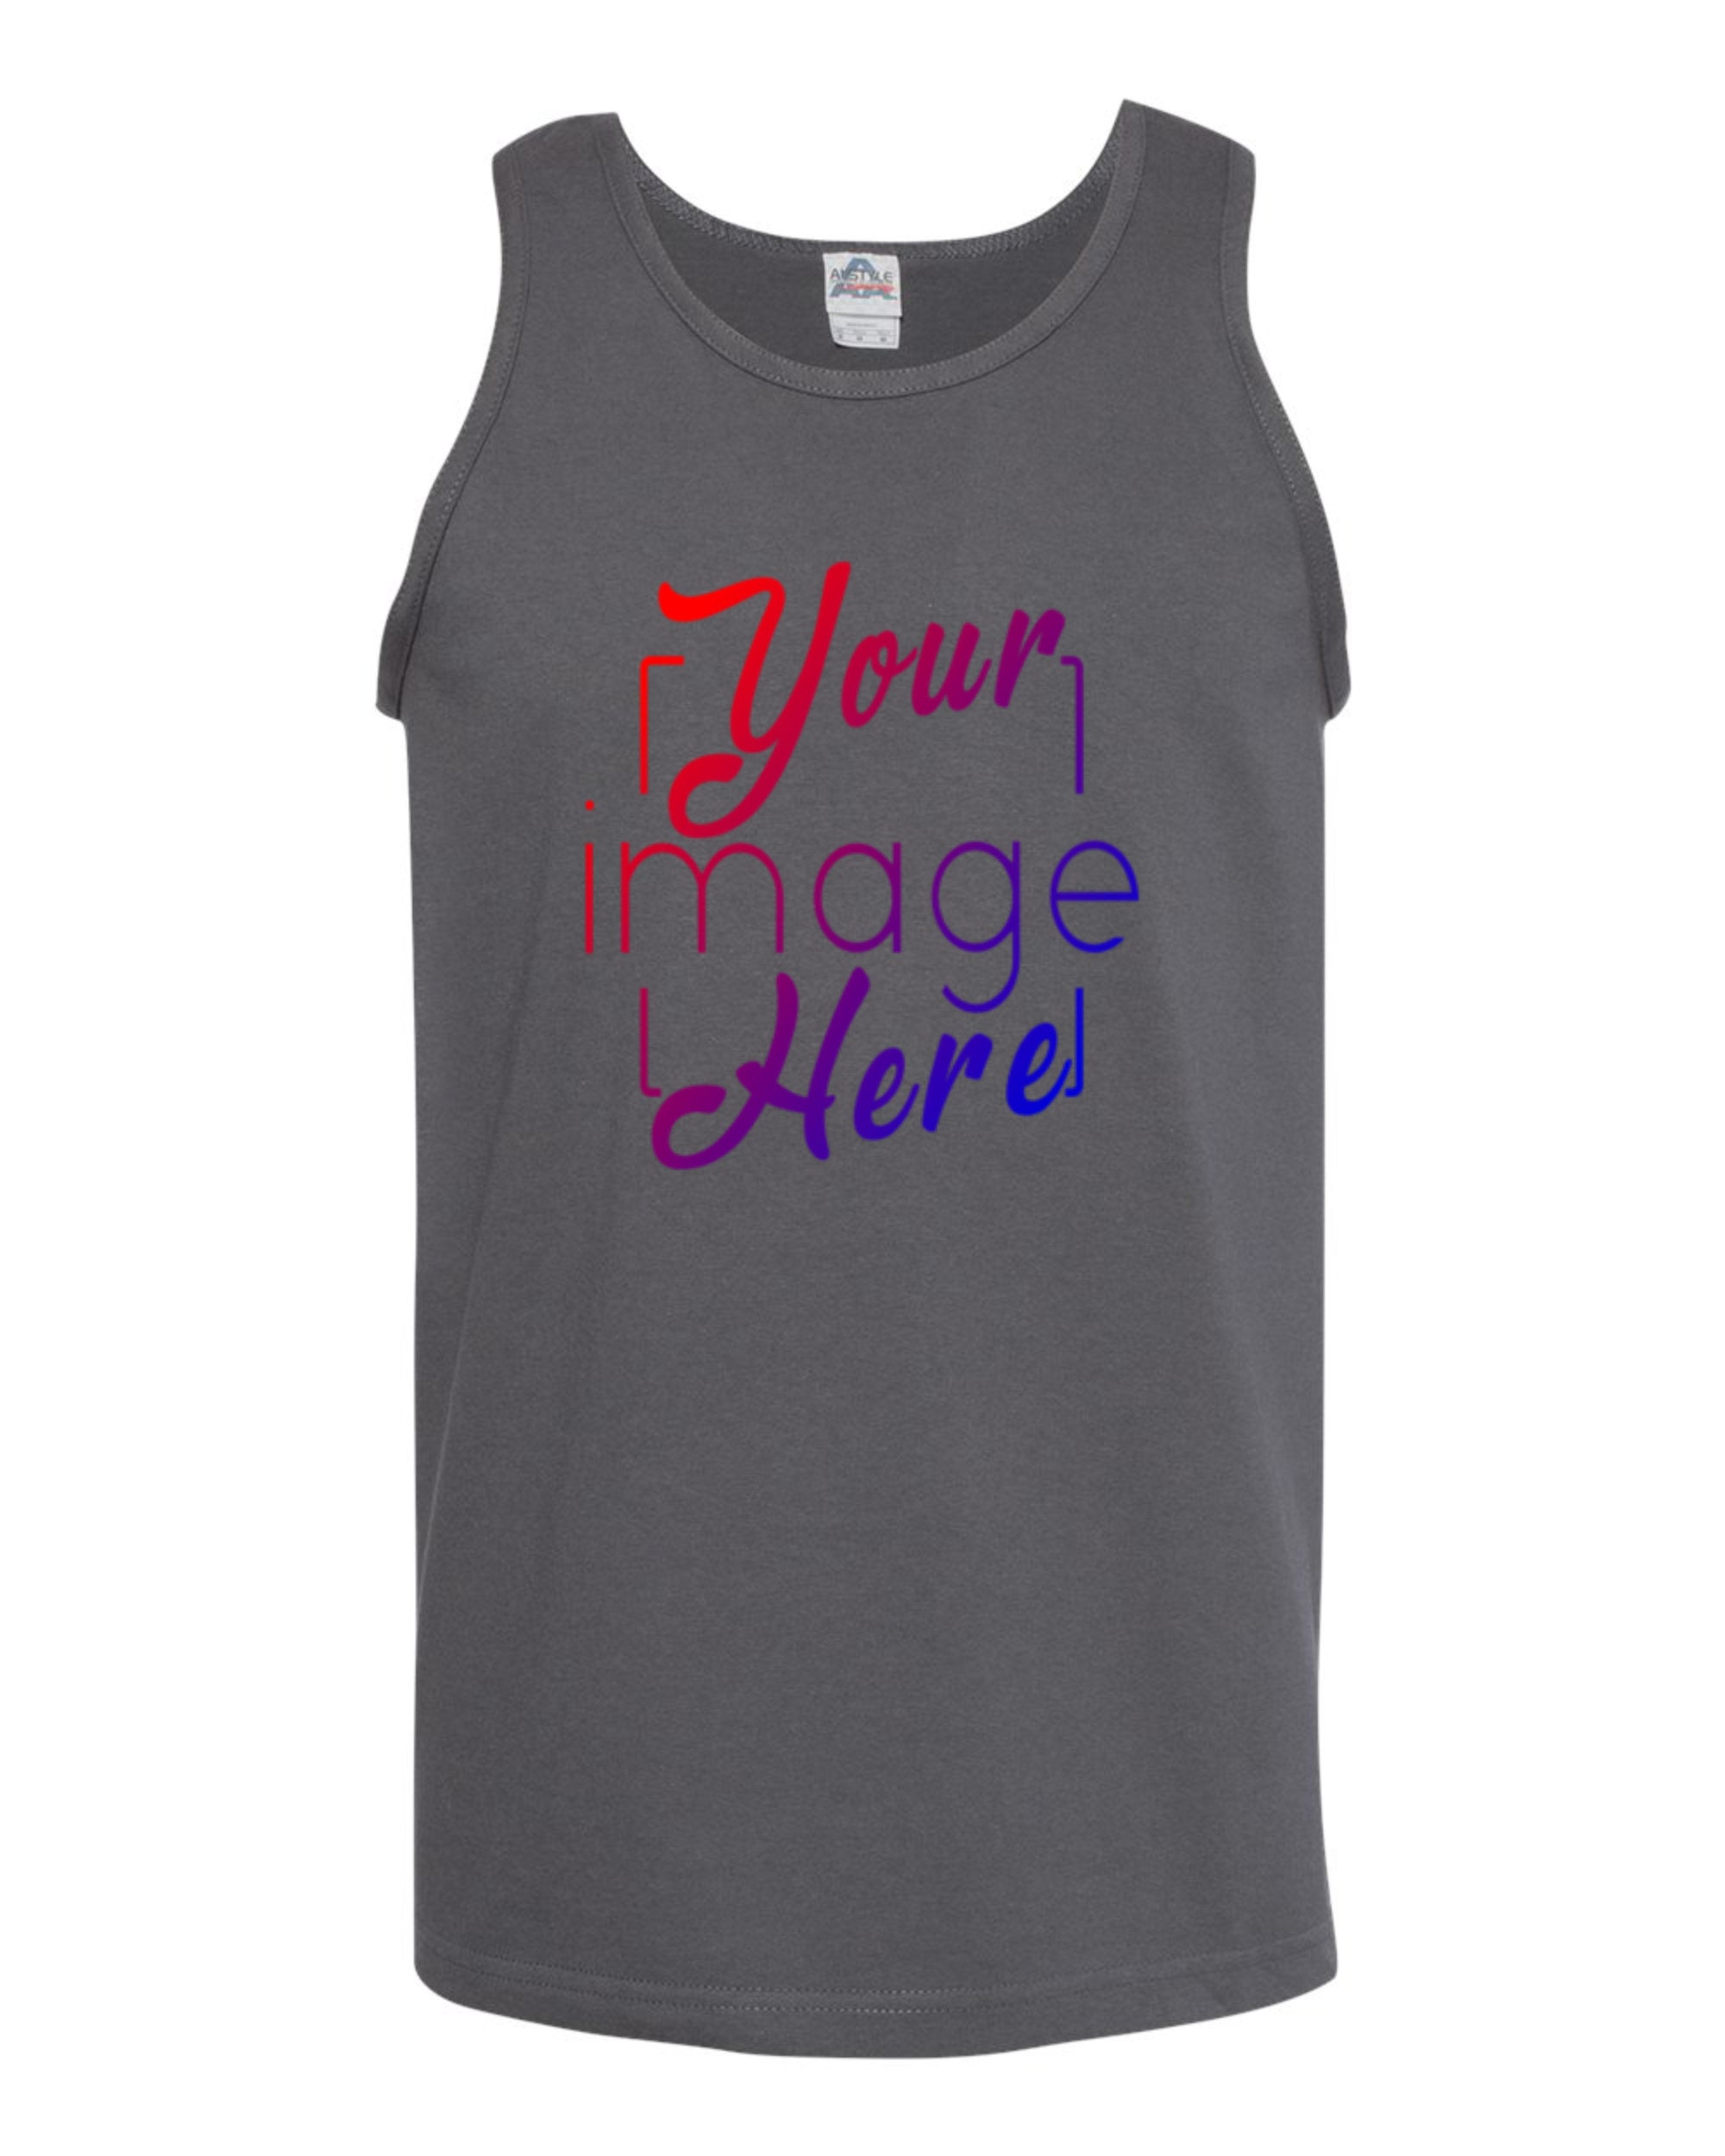 Front Image of Alstyle Tank Top for Custom Printing